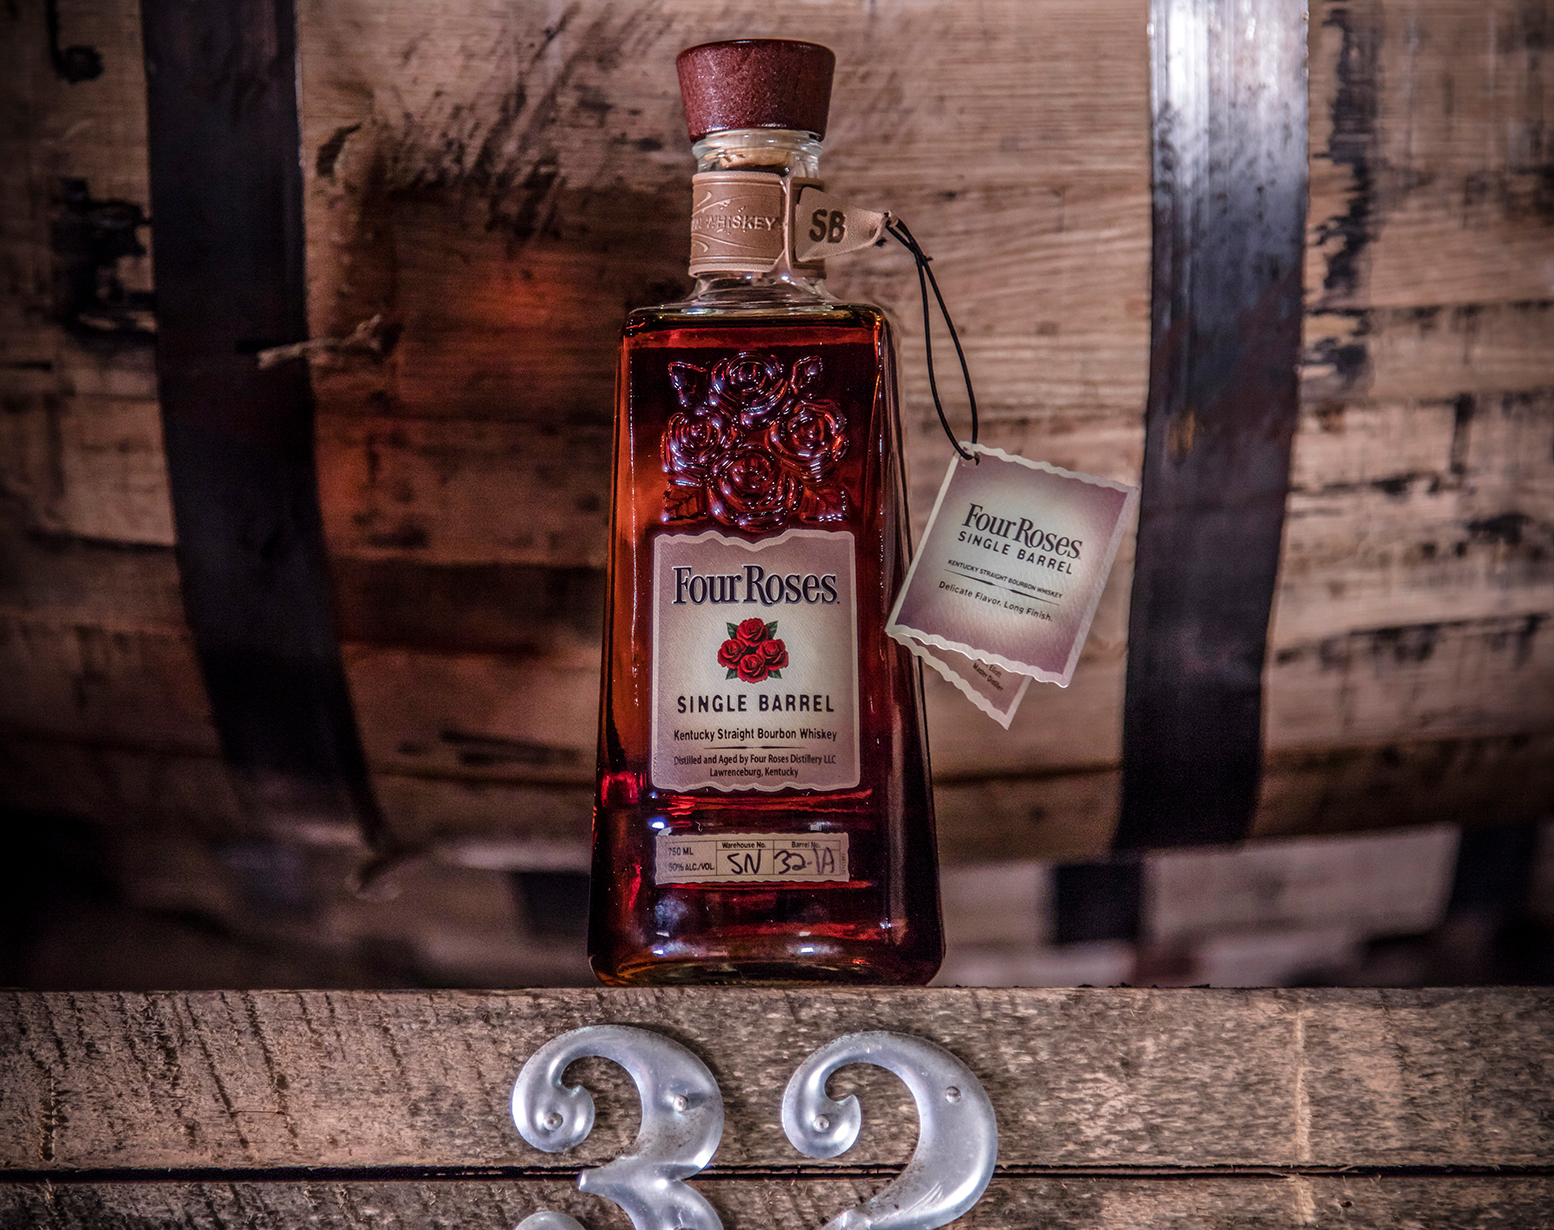 Four Roses Single Barrel Bourbon, $38